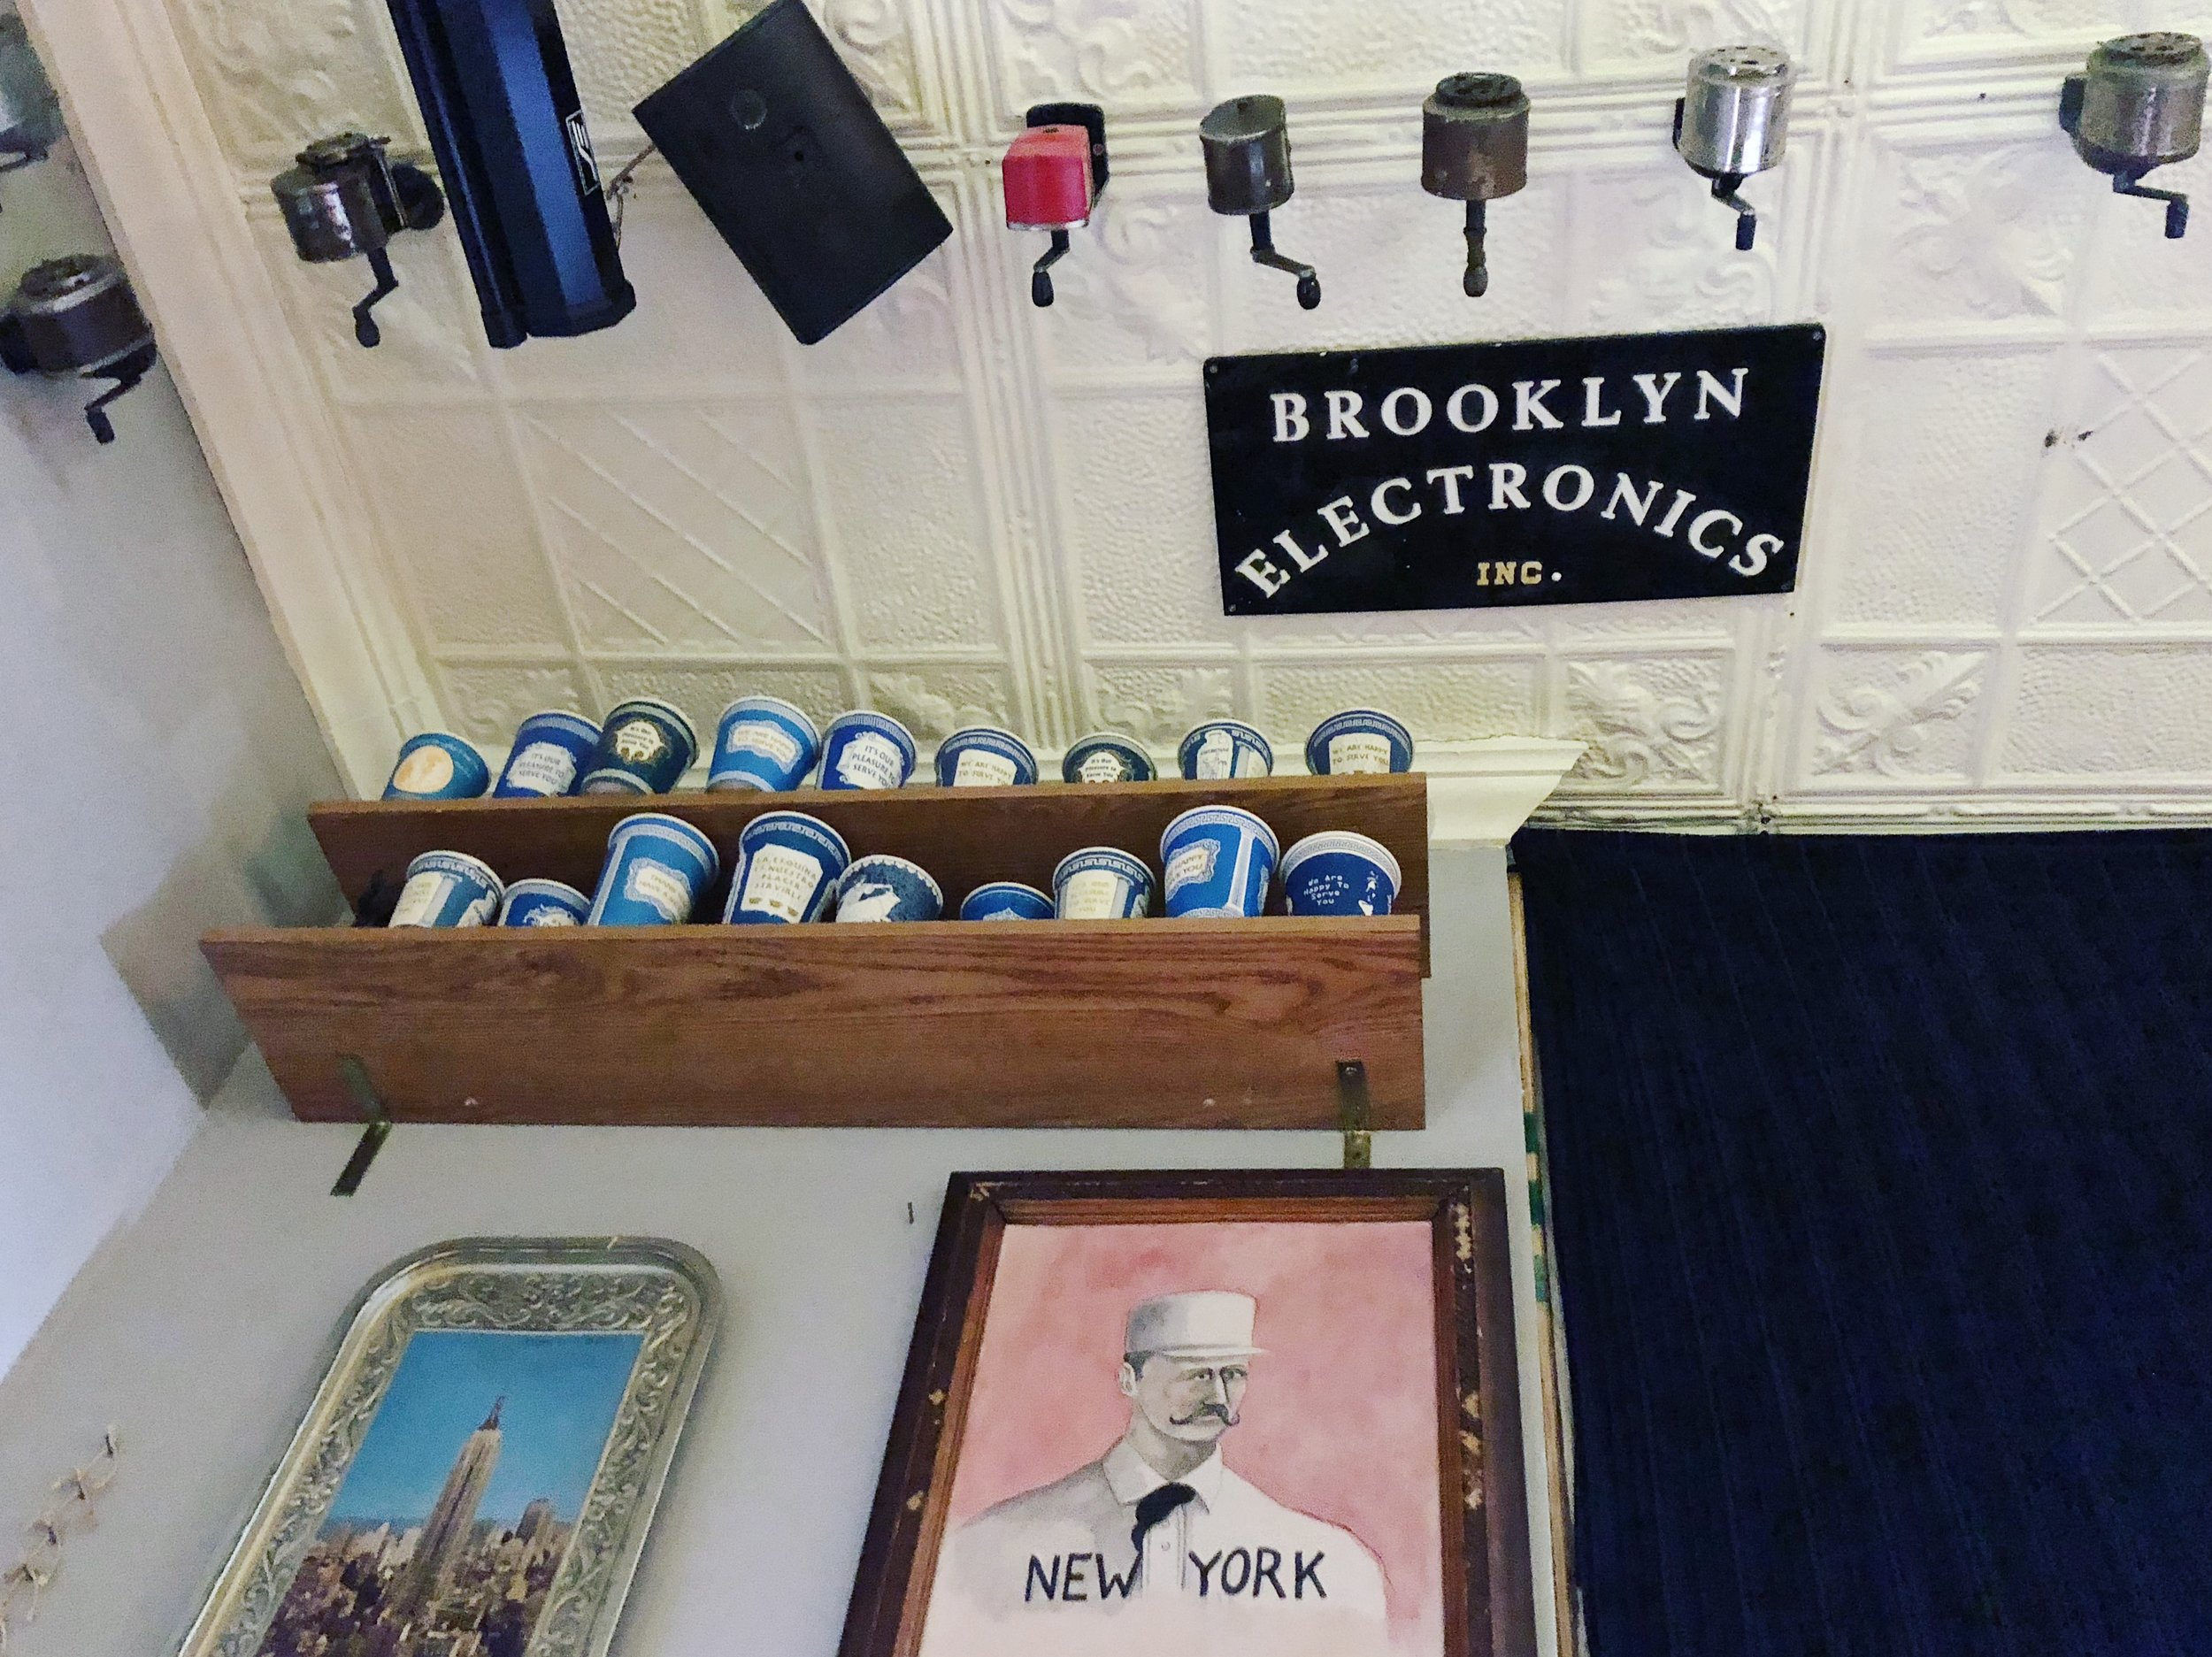 City Reliquary  in Williamsburg, Brooklyn. Photo cred: Jacque Donaldson